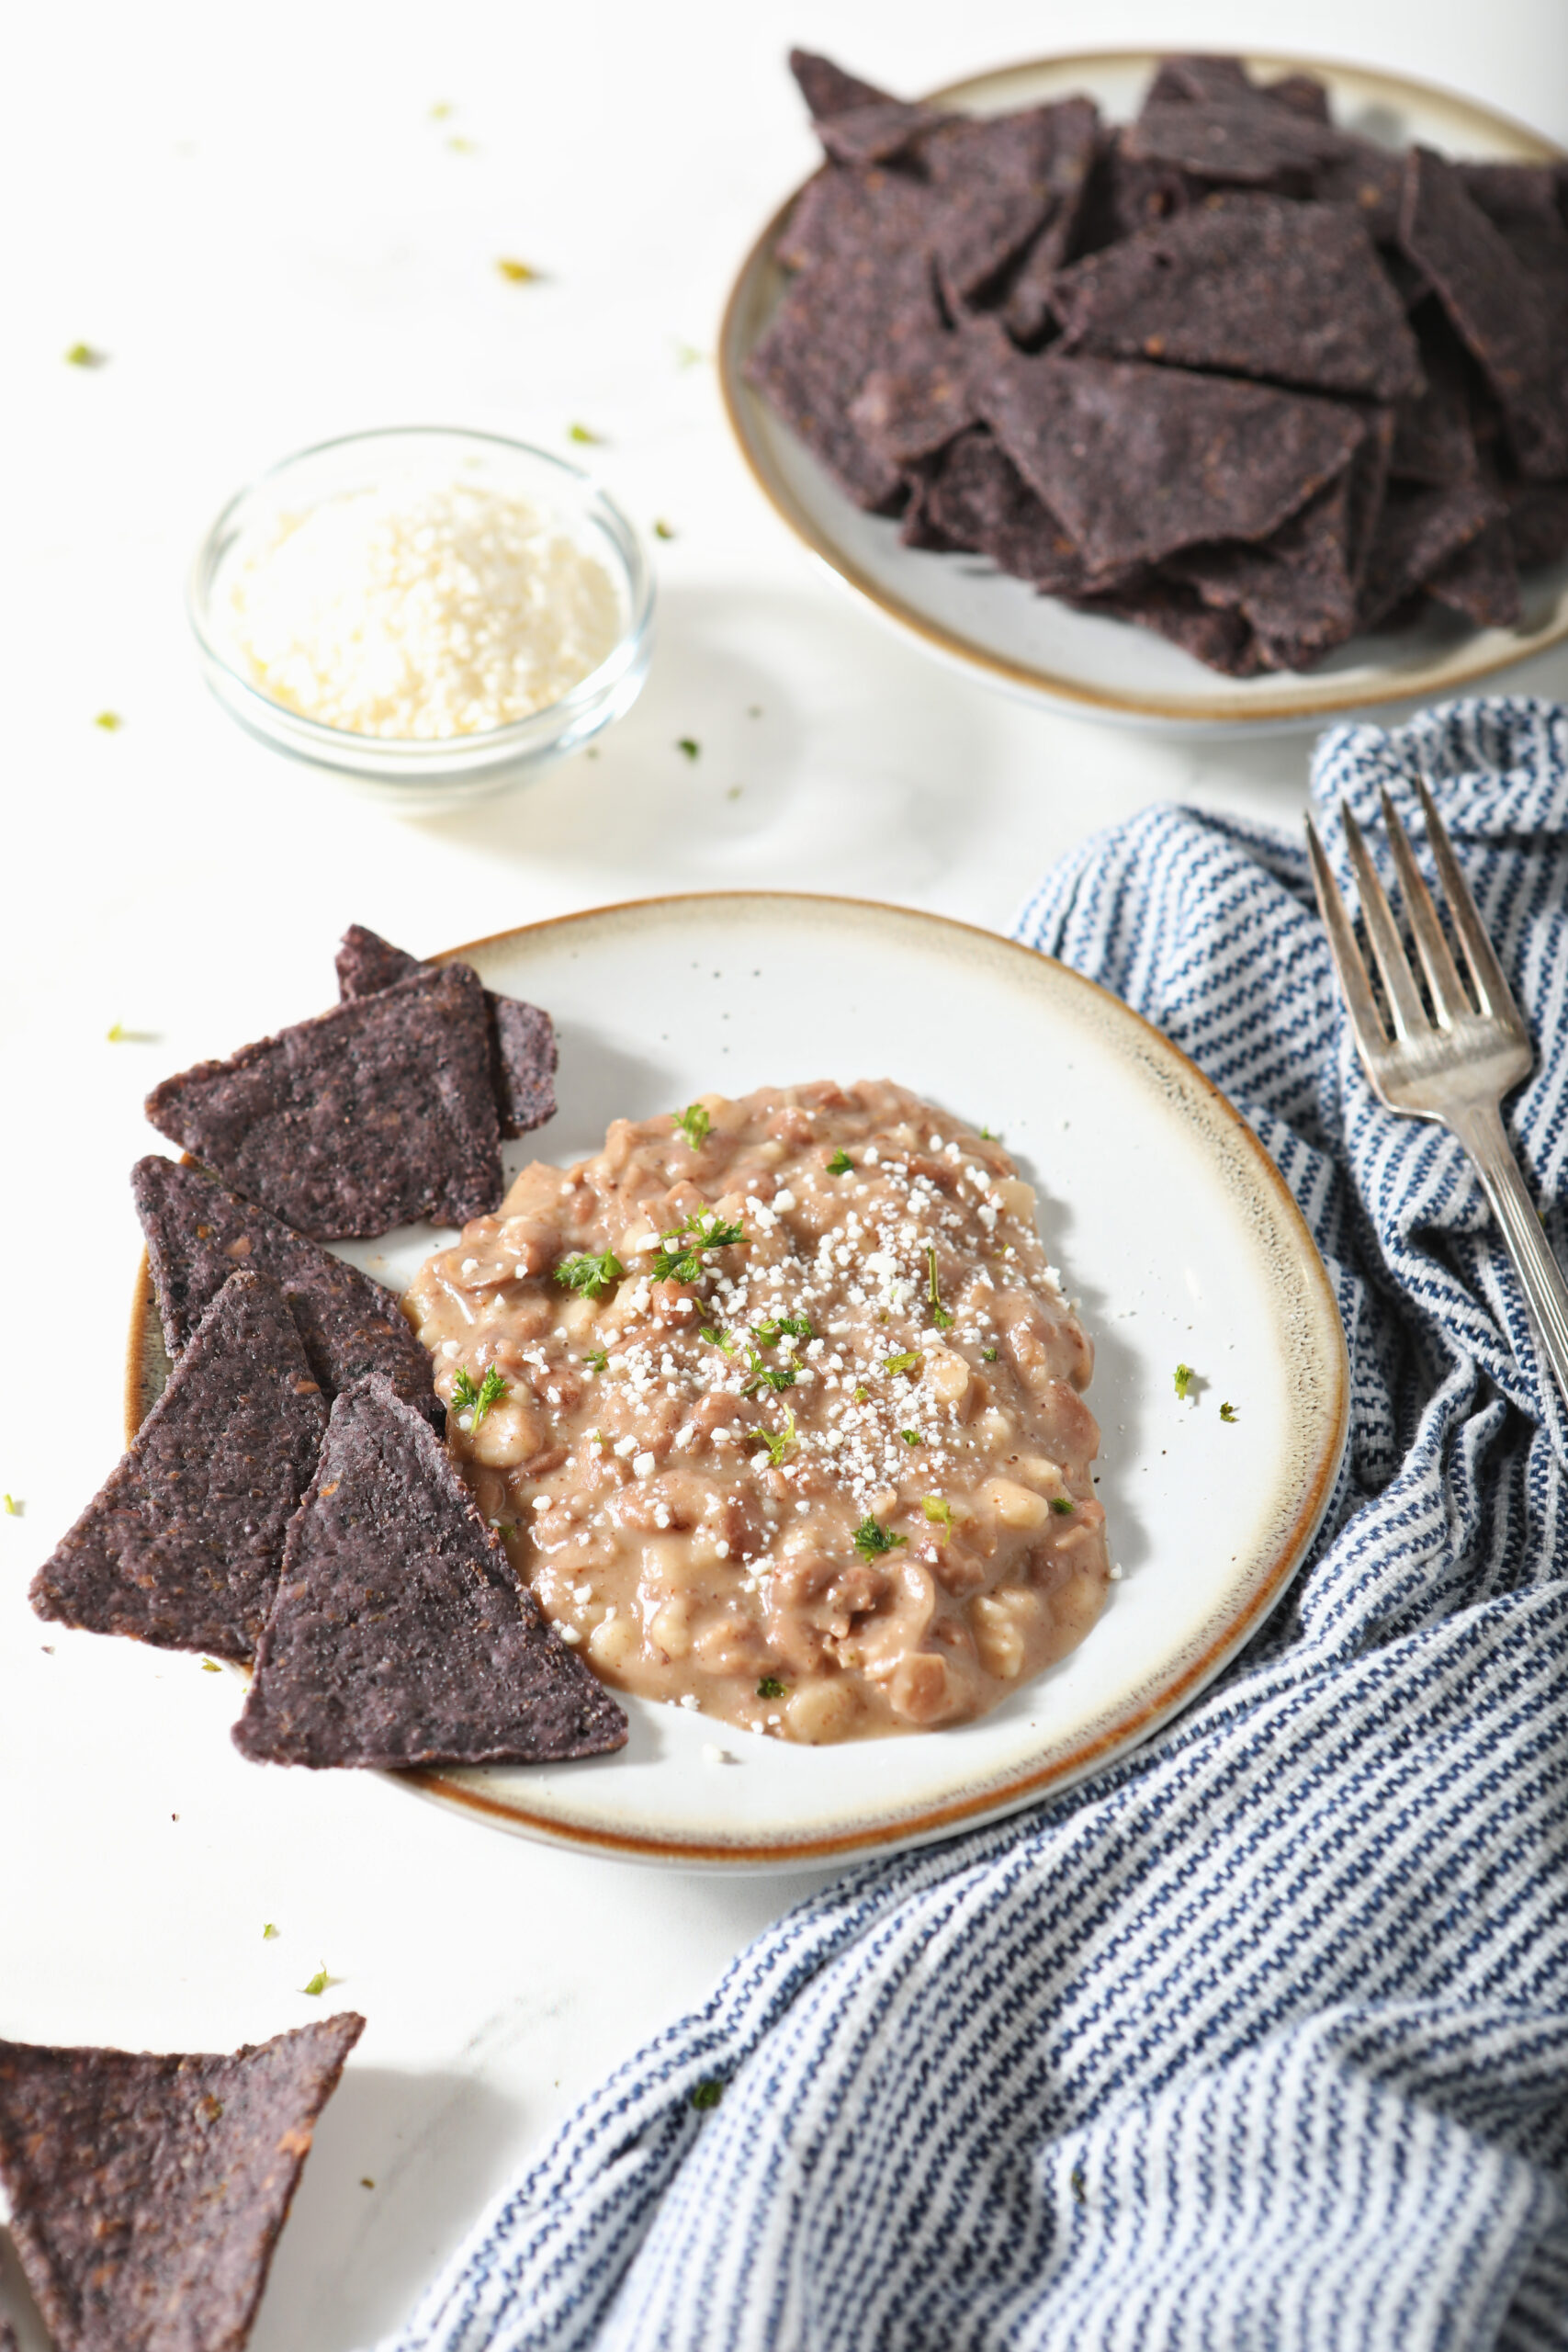 Refried beans on plate with cilantro and blue corn tortilla chips.